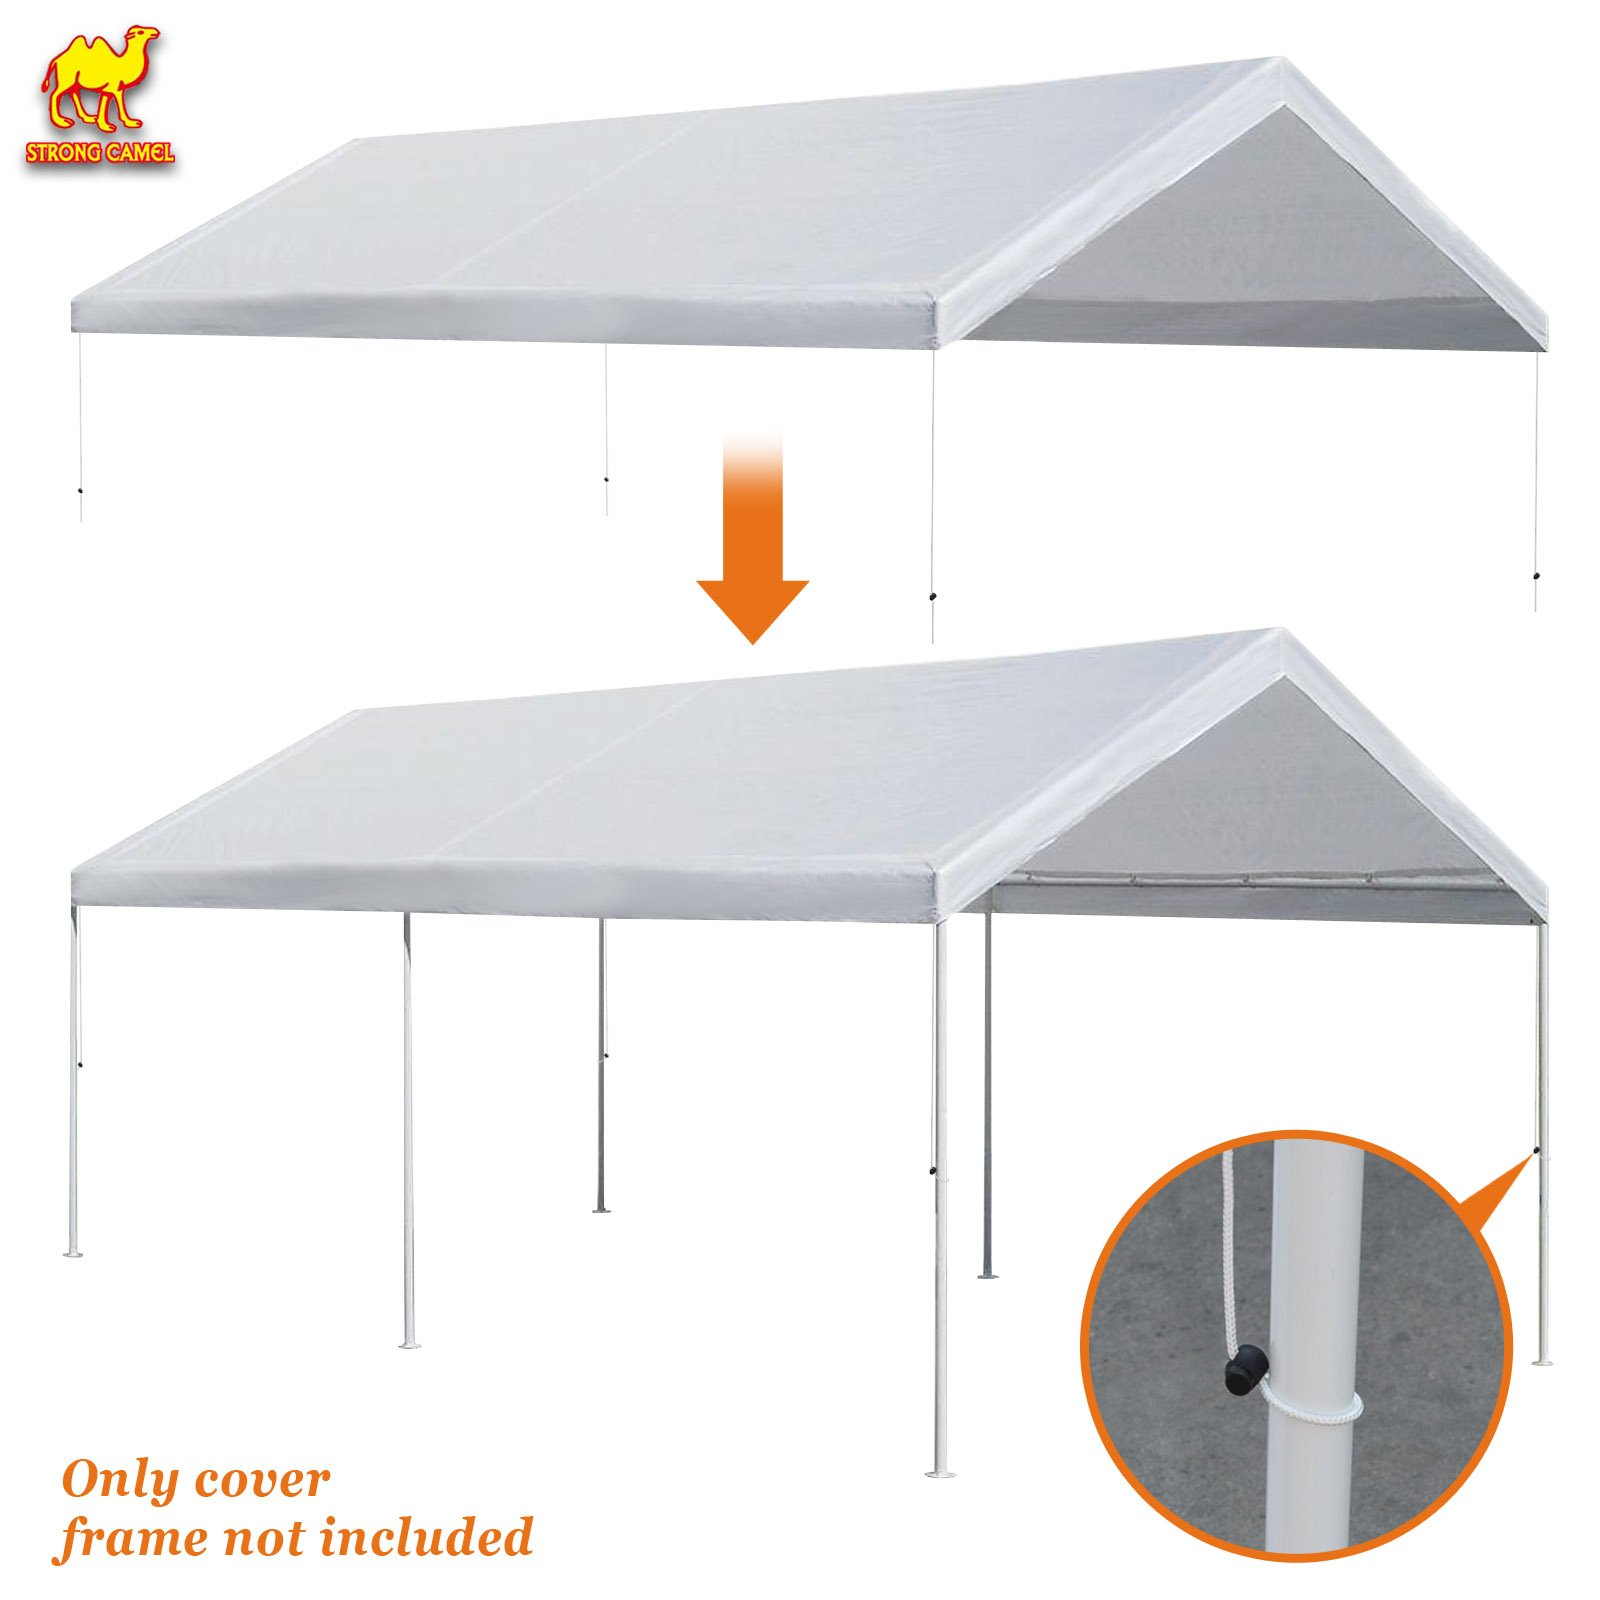 Strong Camel 10'x20' Carport Replacement Canopy Cover for Tent Top Garage Shelter Cover w Ball Bungees (Only cover, Frame is not included)